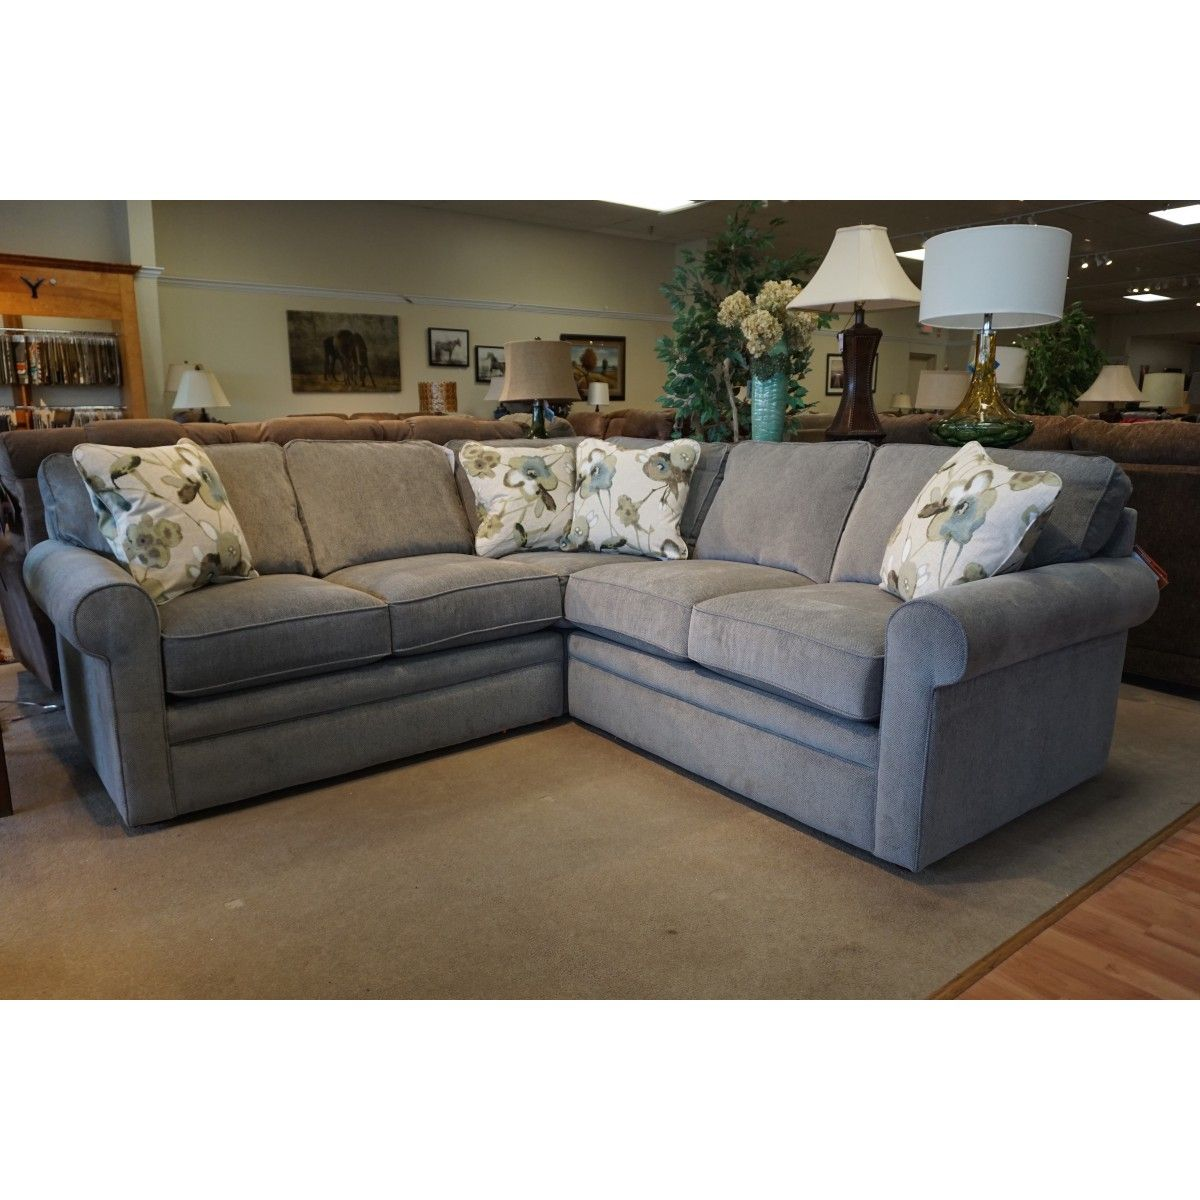 La-Z-Boy Collins Sectional | Lazy boy furniture